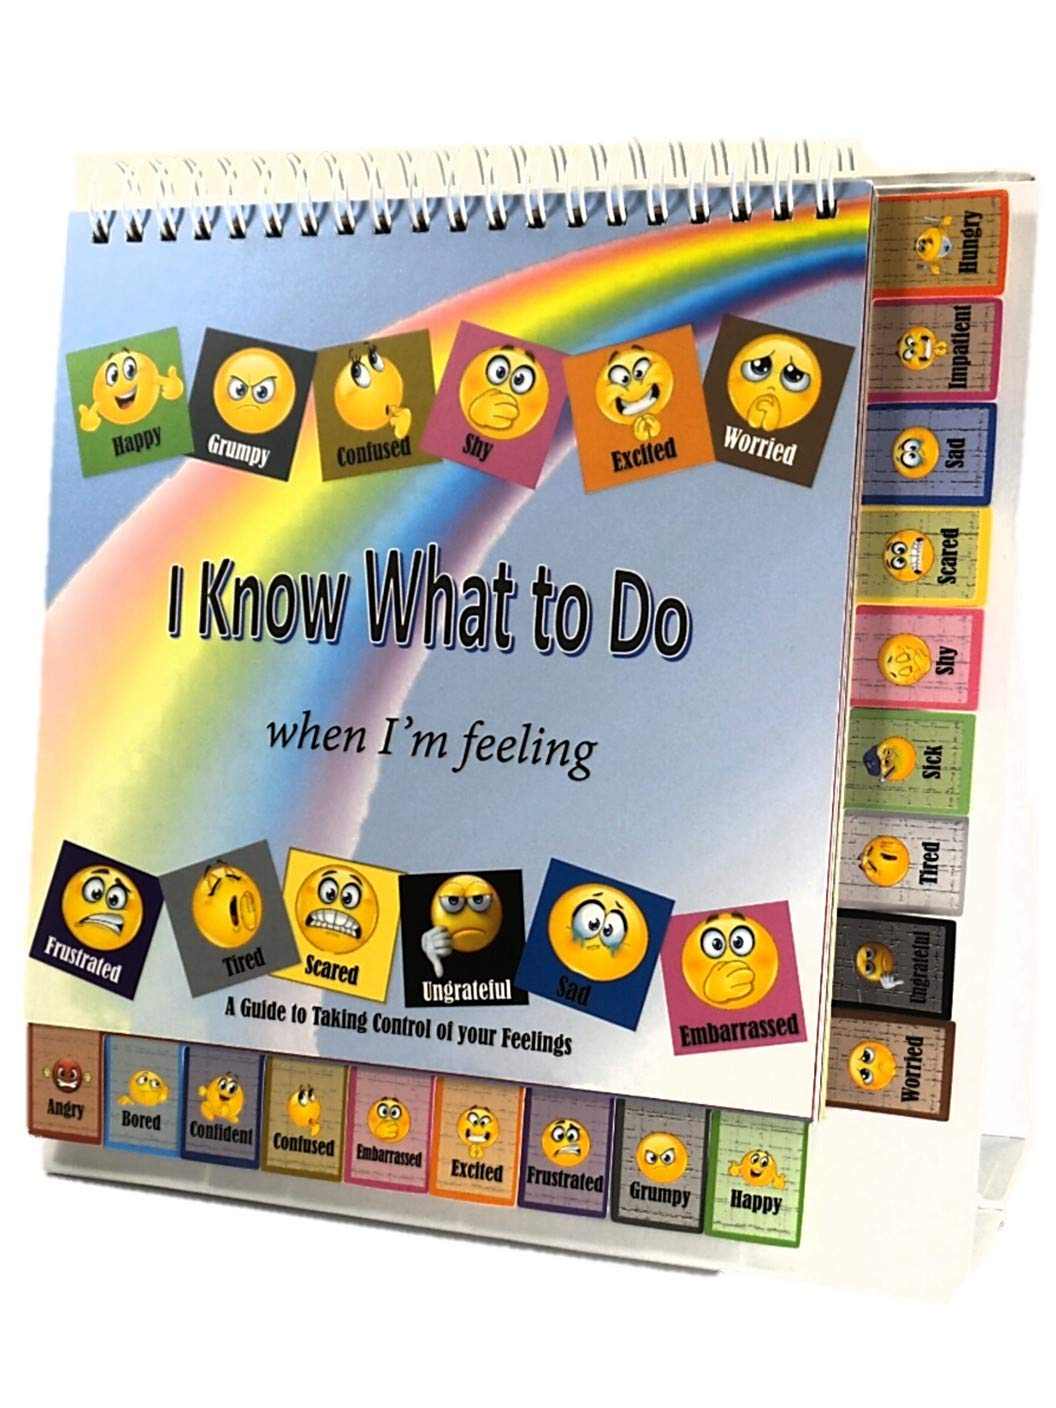 Thought-Spot® I Know What to Do Cards for Taking Control of Your Feelings/Emotions; 18 Emoji Cards to Help Children Identify Their Feelings & Emotions and Express Them in a Positive Manner Positive Paren+ing